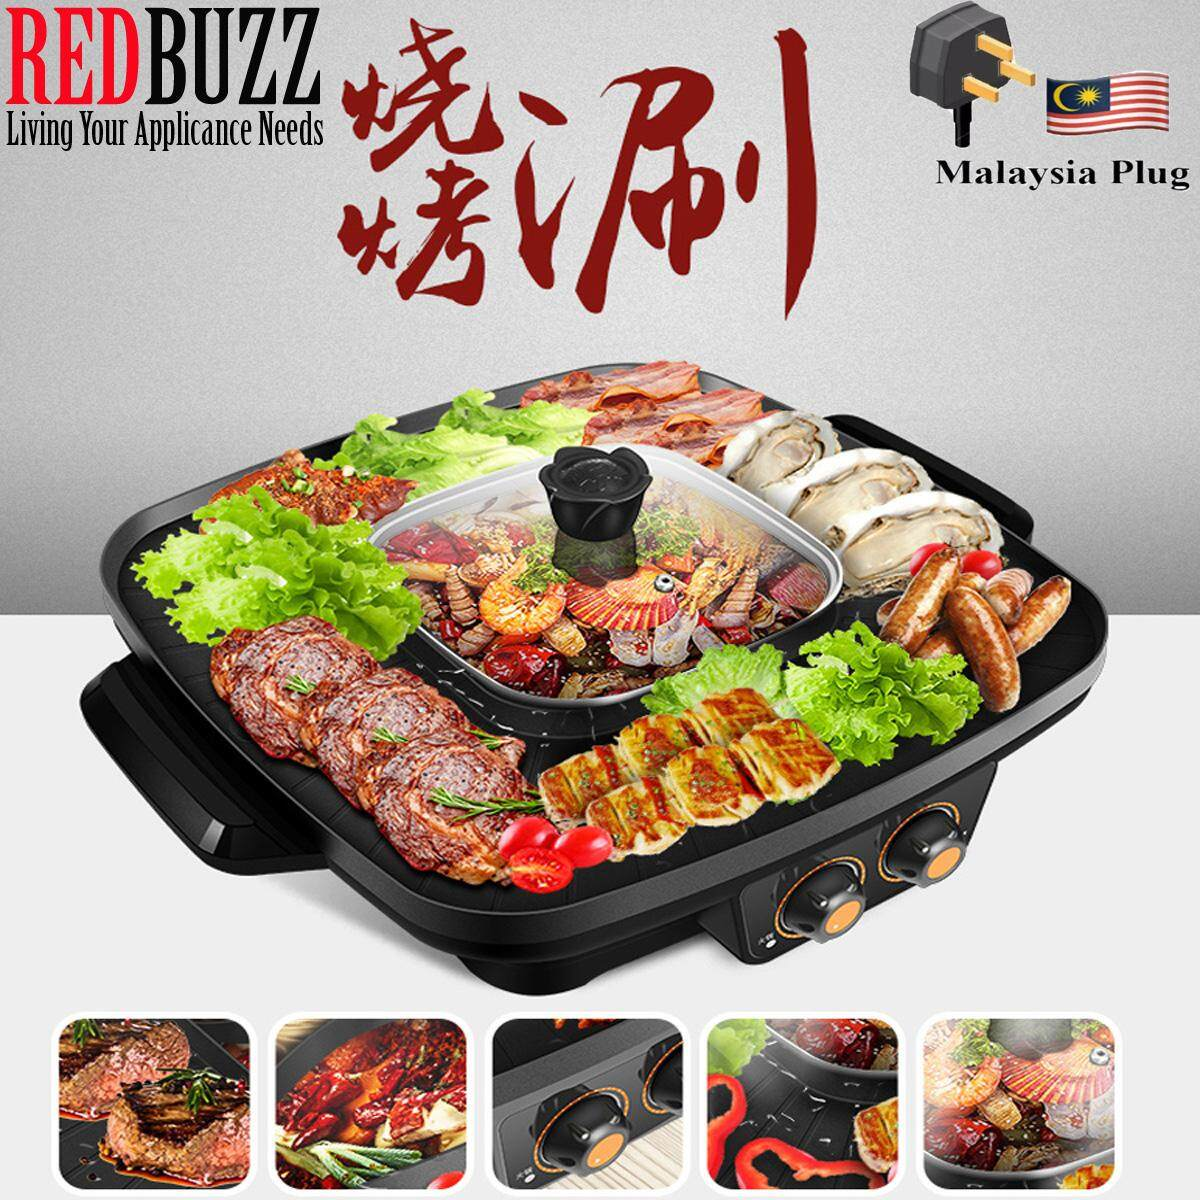 REDBUZZ New 2 in 1 Korea Square Multipurpose Electric Steamboat with BBQ Grill Cookware Hot Pot( Big Size 42 x 42cm )